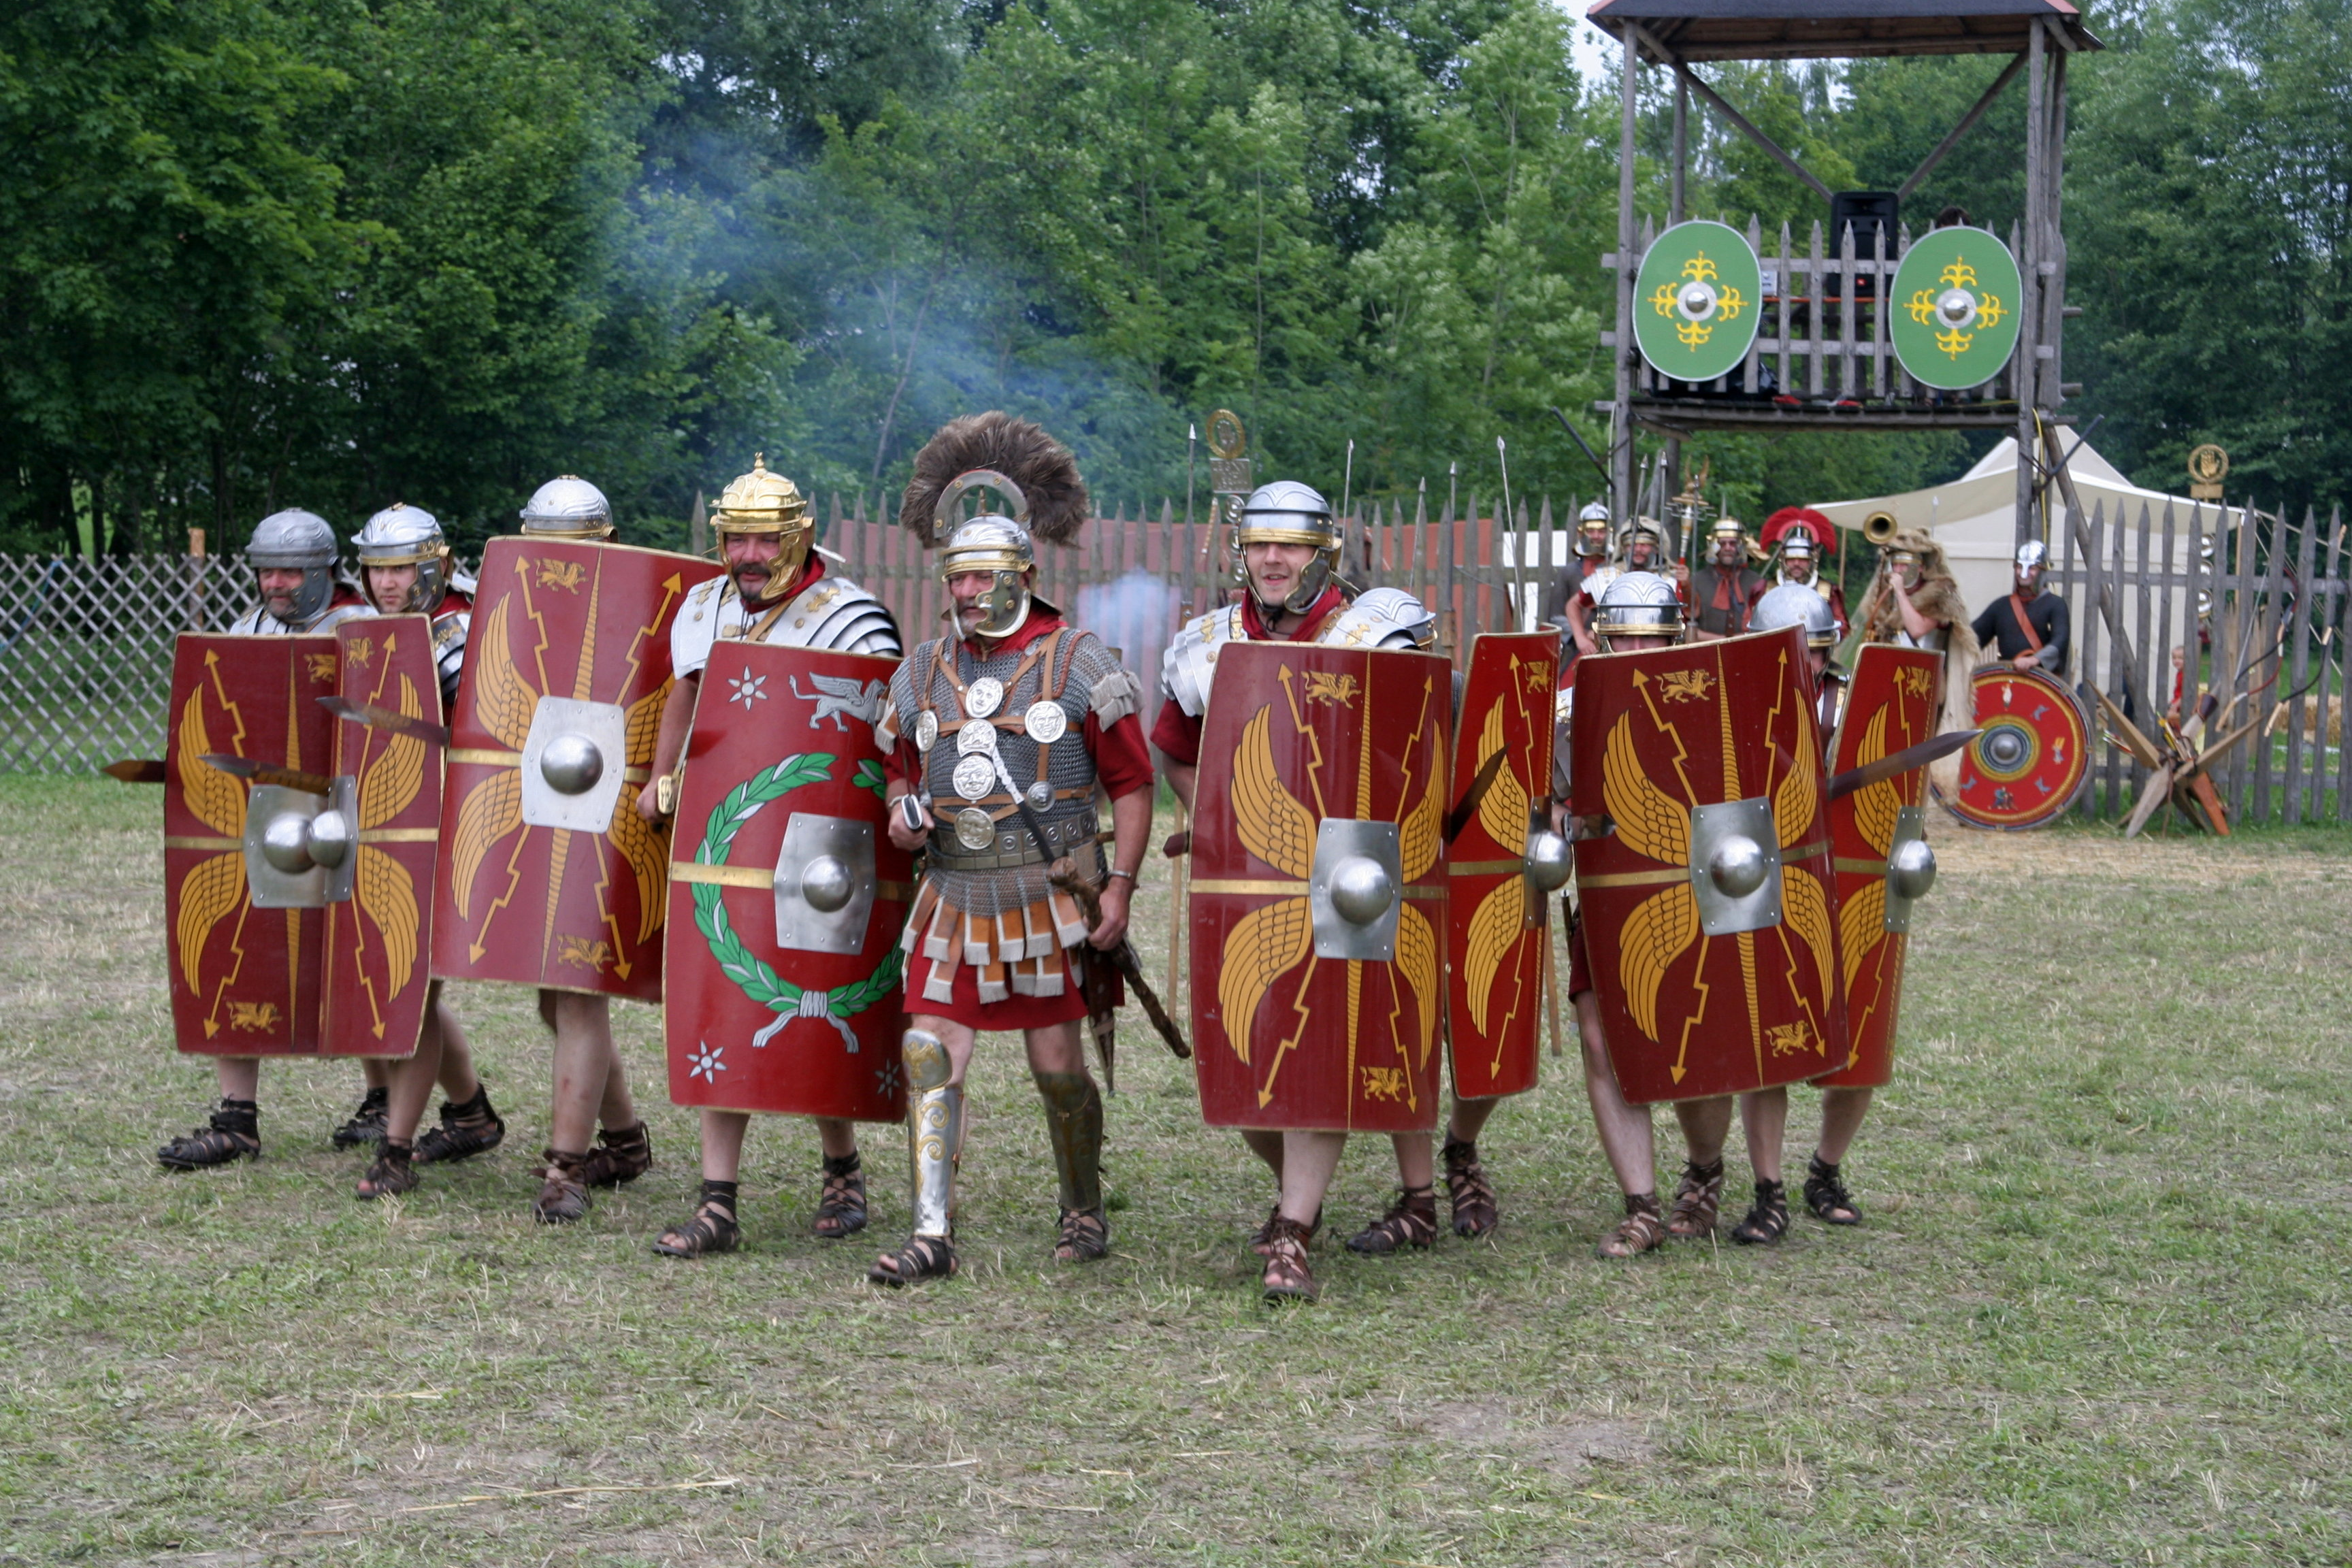 File:Roman LEGION at attack.jpg - Wikipedia, the free encyclopedia